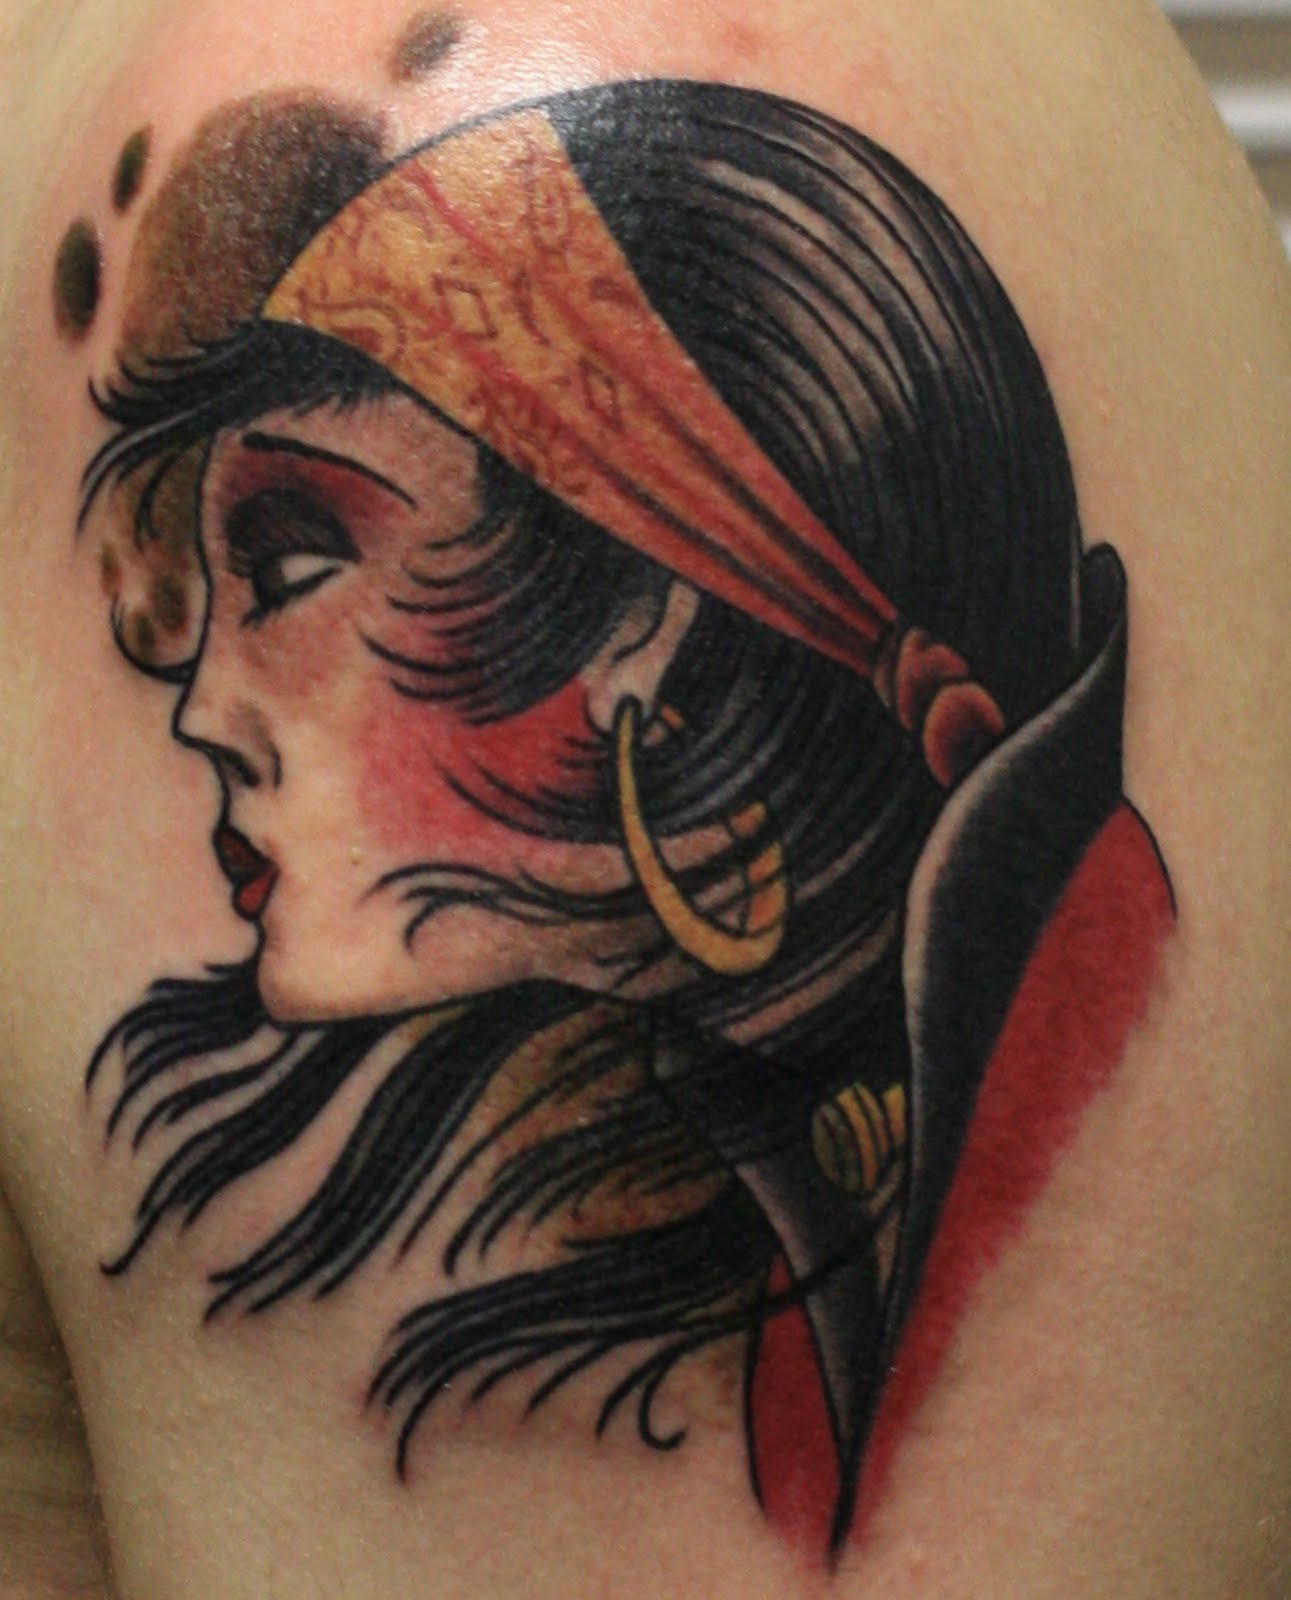 Gypsy tattoos designs ideas and meaning tattoos for you - Tatouage gitane signification ...